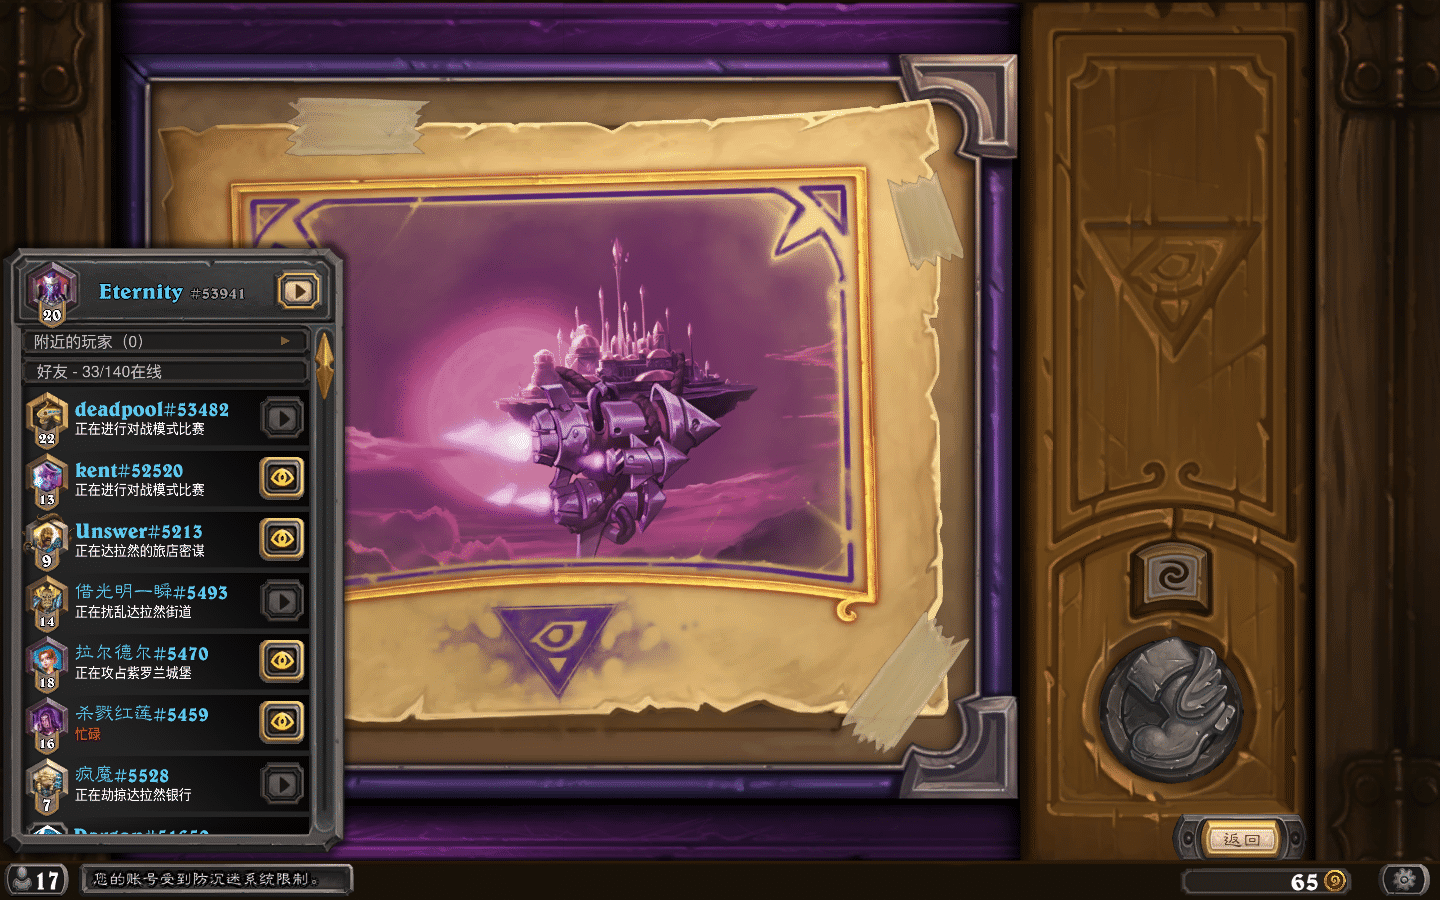 Hearthstone Screenshot 06-08-19 14.55.28.png